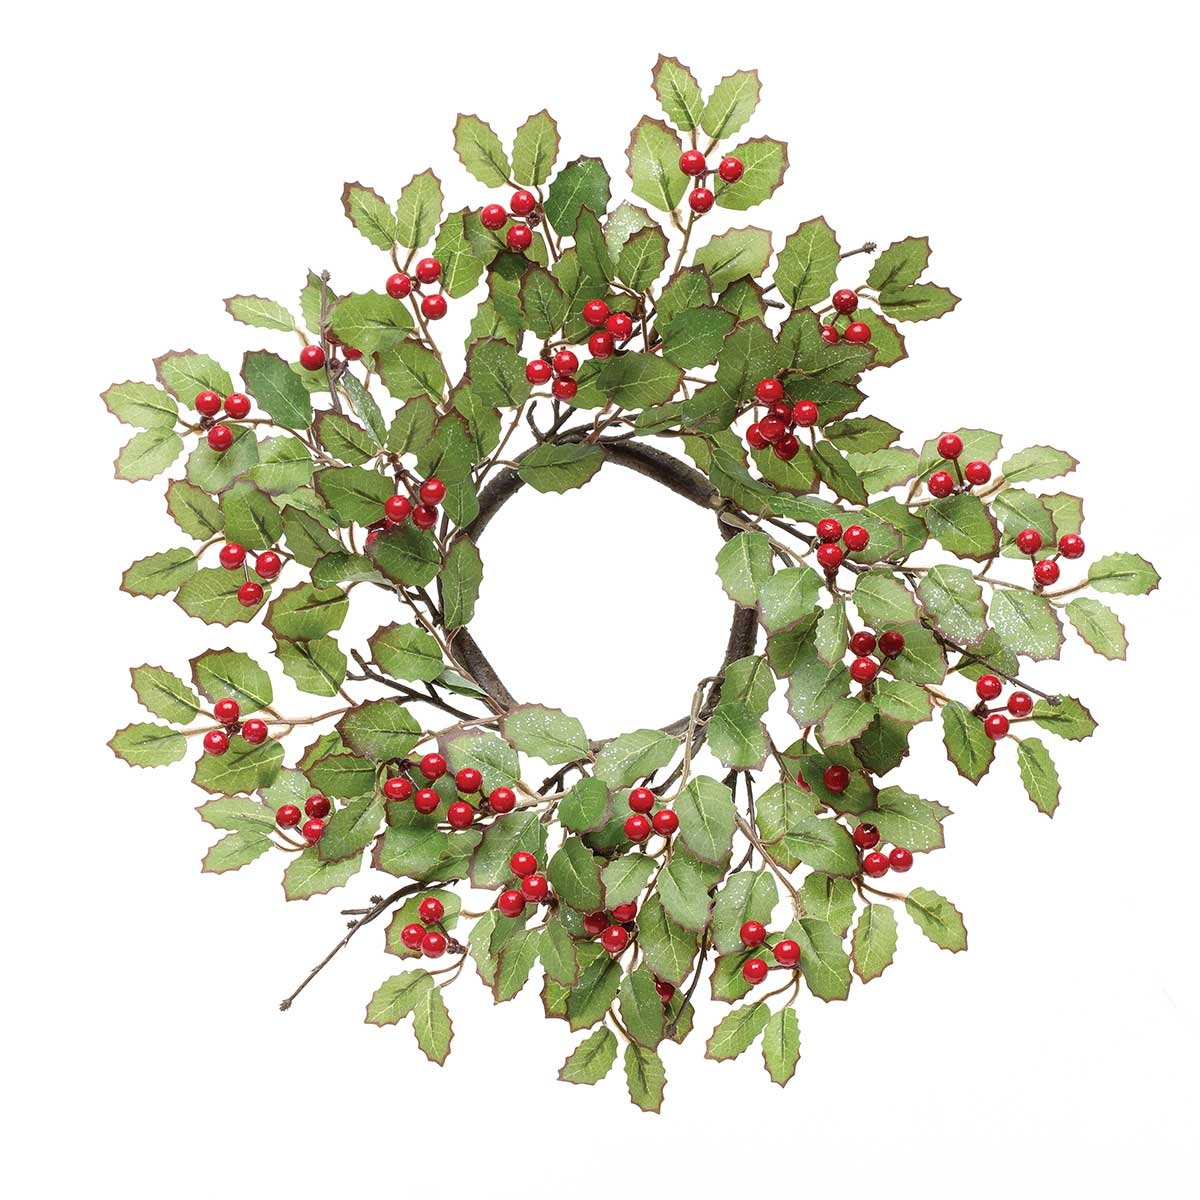 HOLLY MINI WREATH WITH RED BERRIES